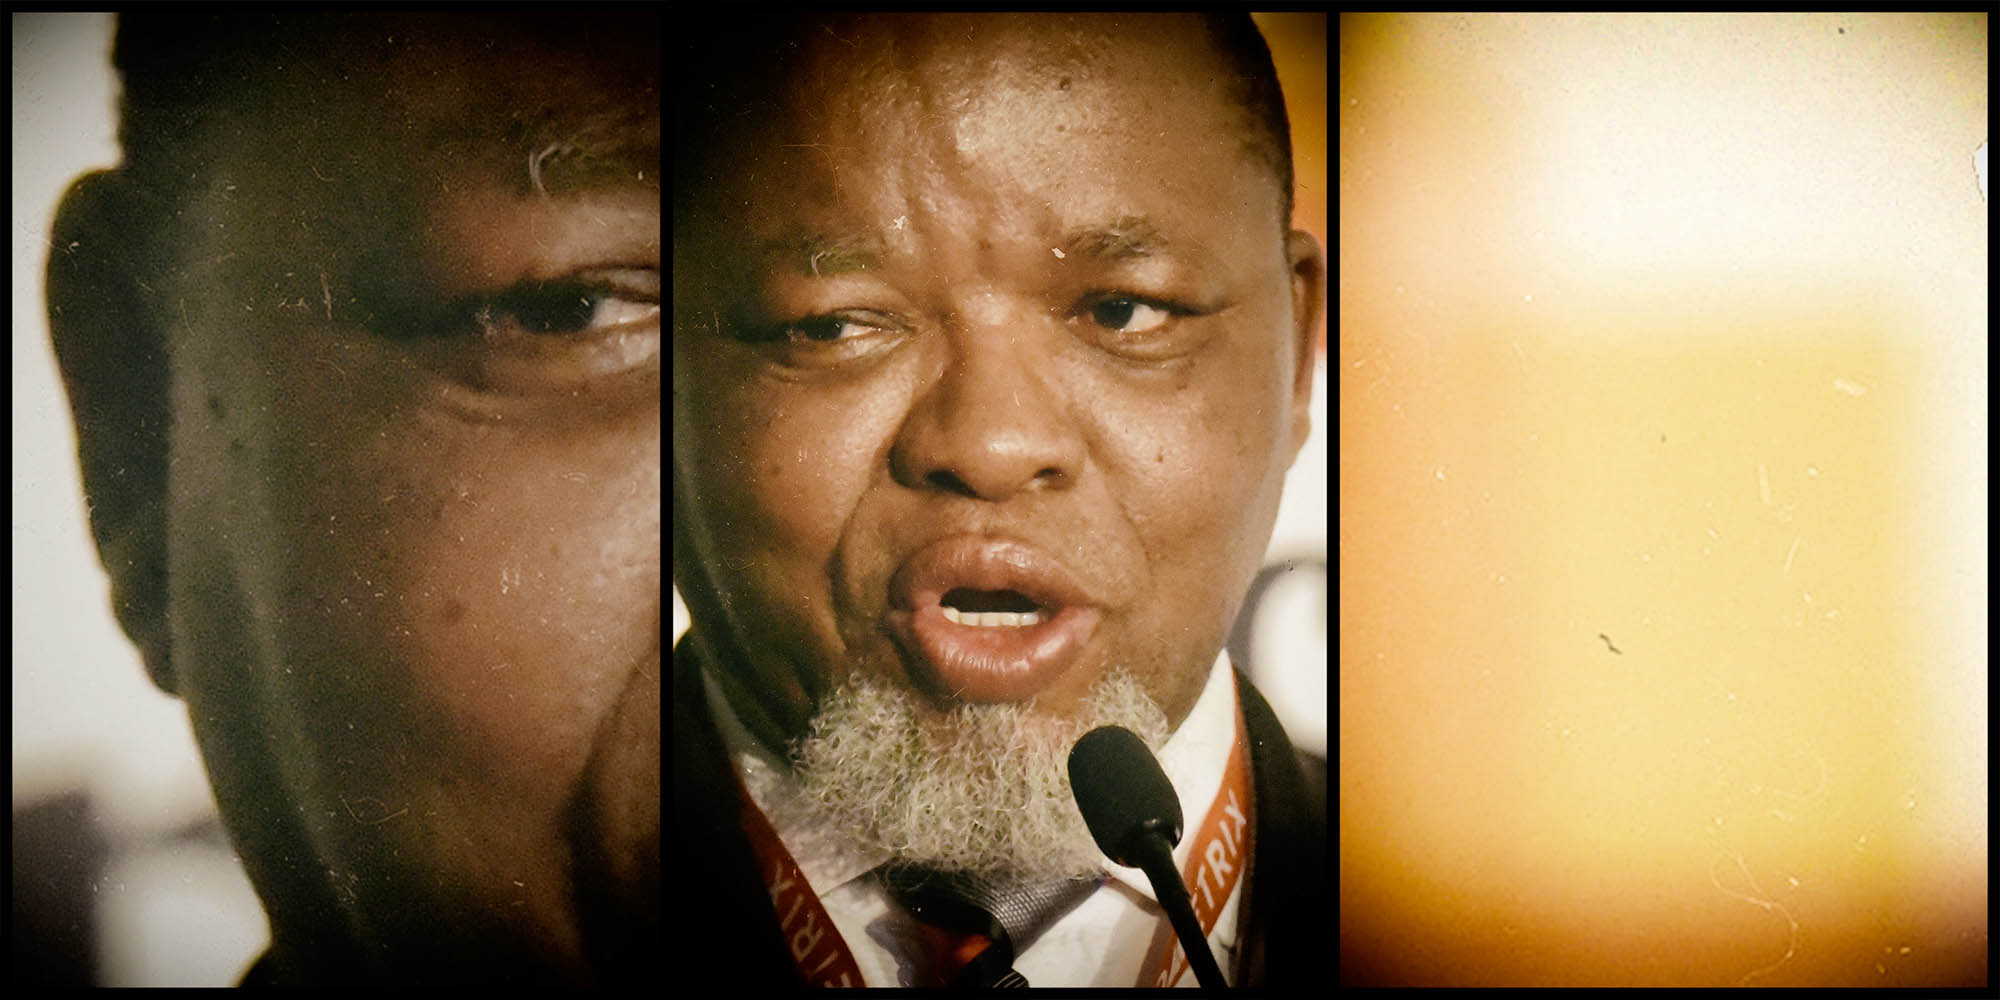 South Africa has no energy crisis, says minister Gwede Mantashe - Daily Maverick